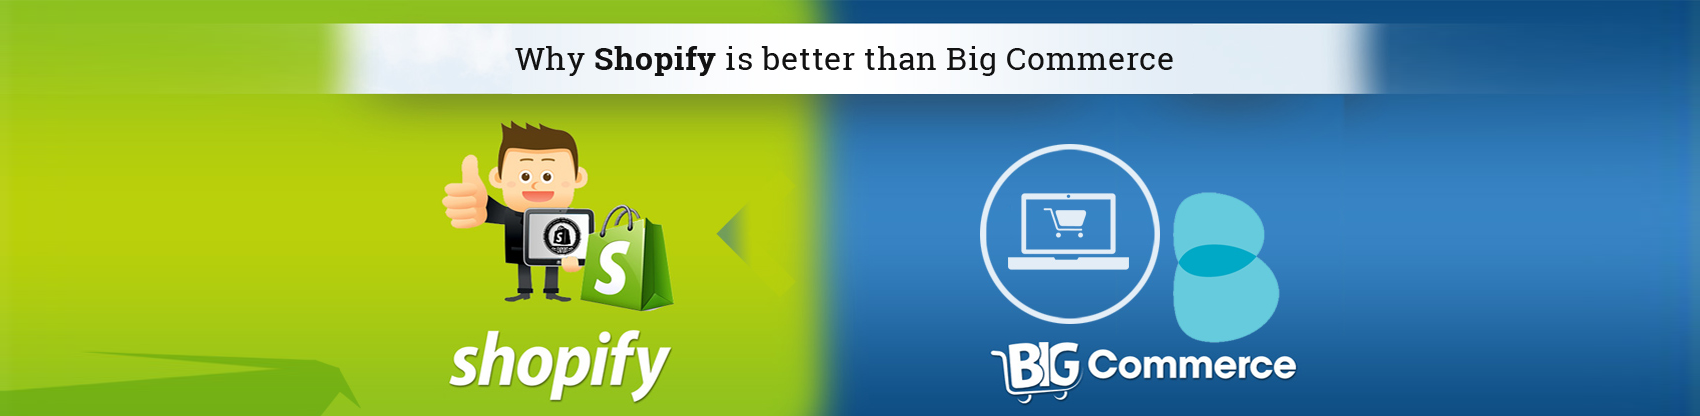 Why Shopify is better than BigCommerce?